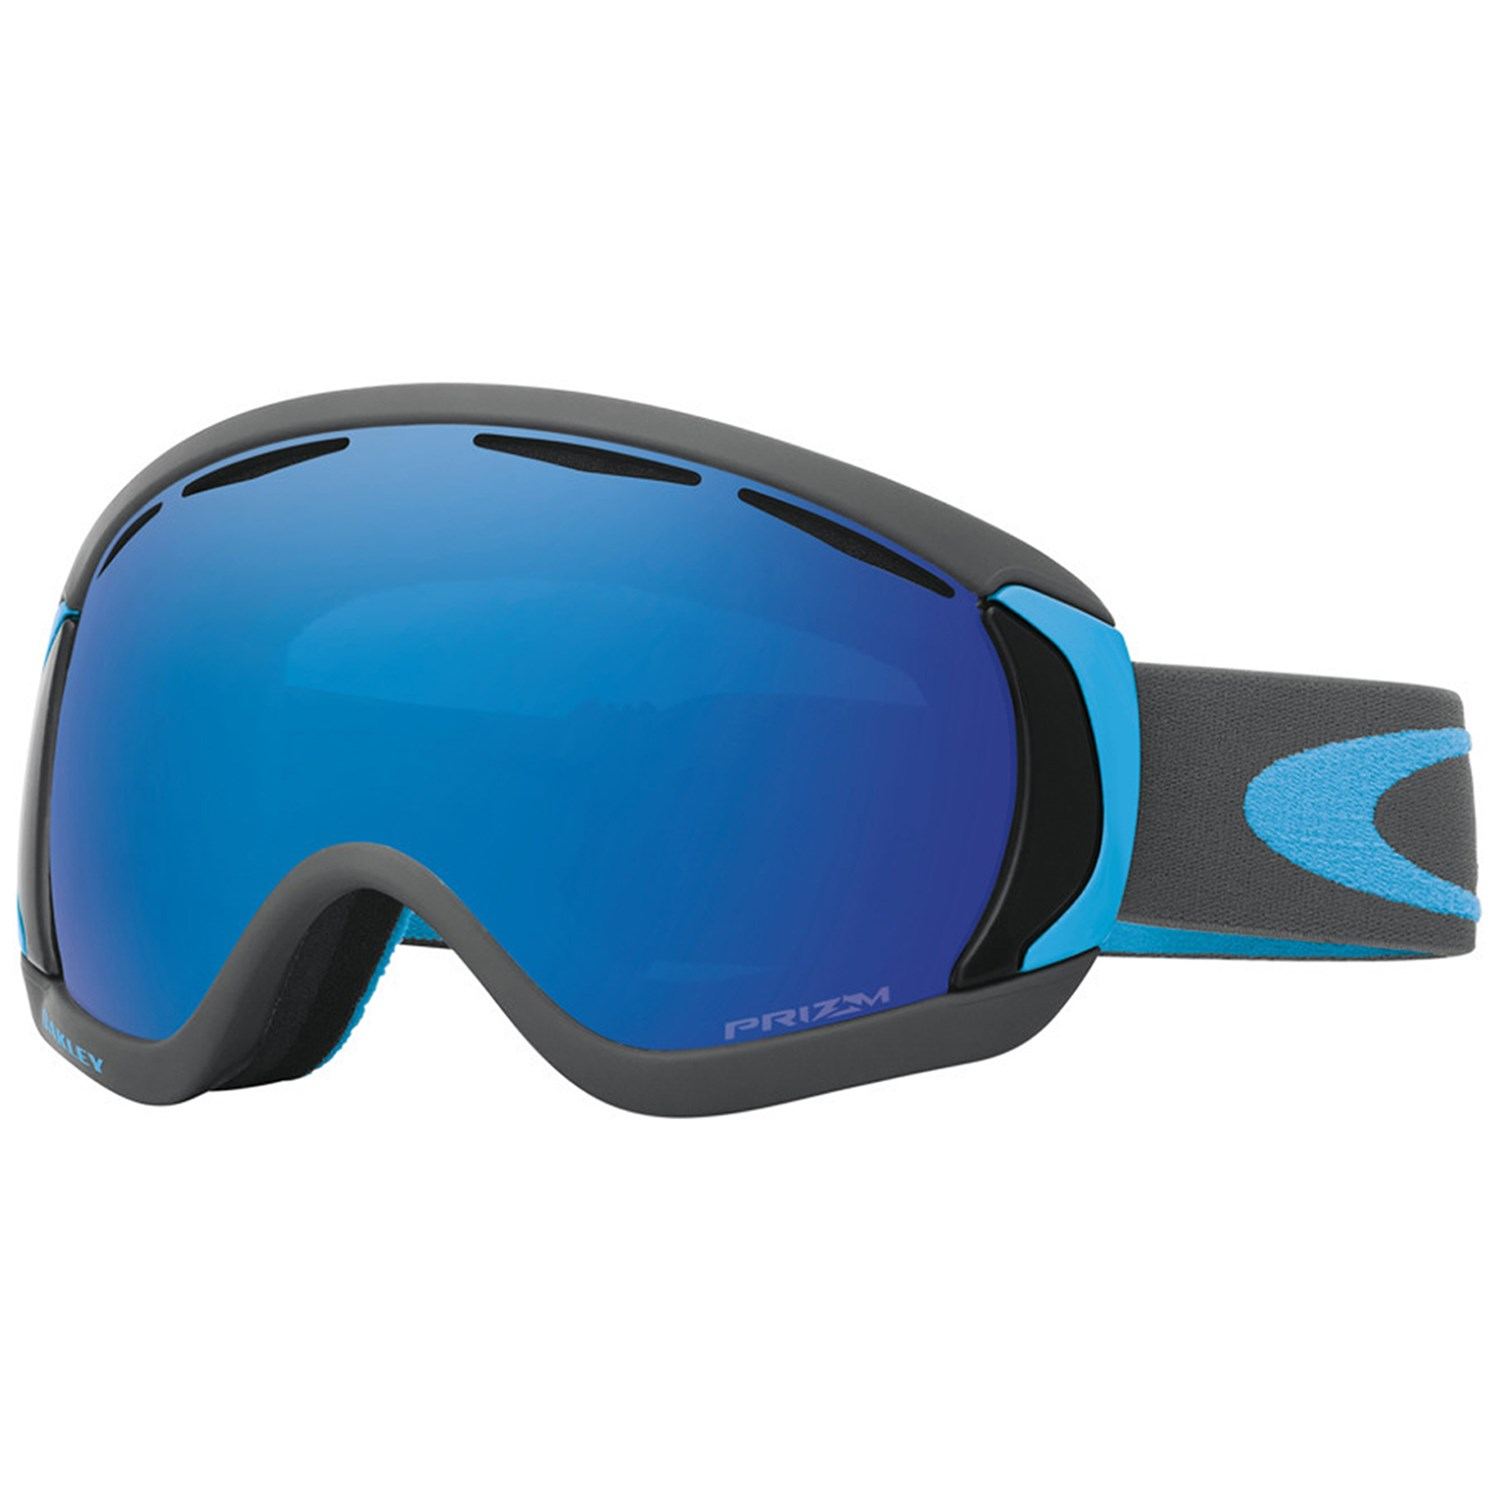 oakley goggles  oakley canopy goggles